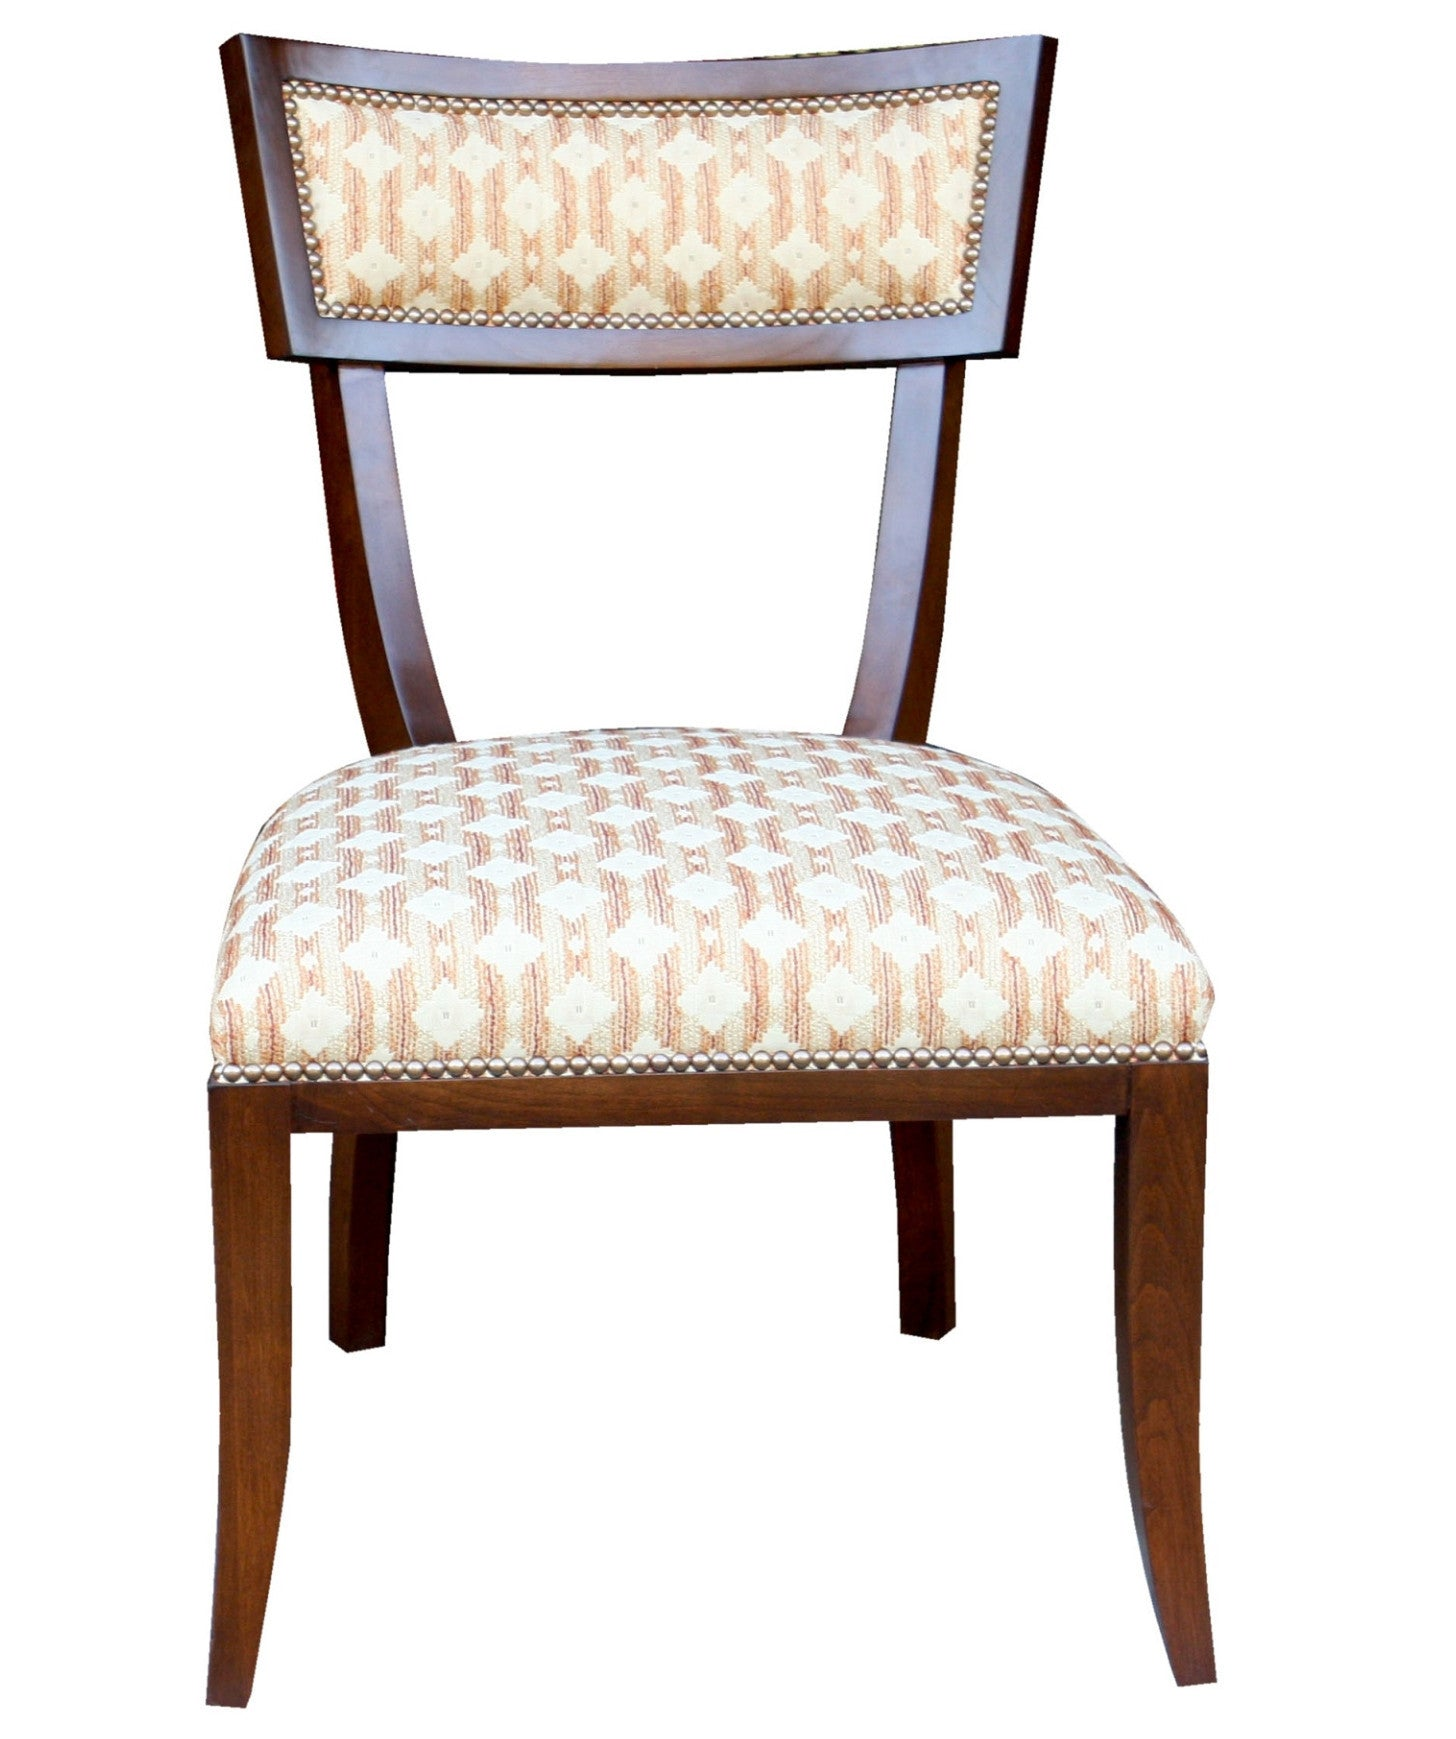 Delaware dining room chair definition de dining room for Dining room definition